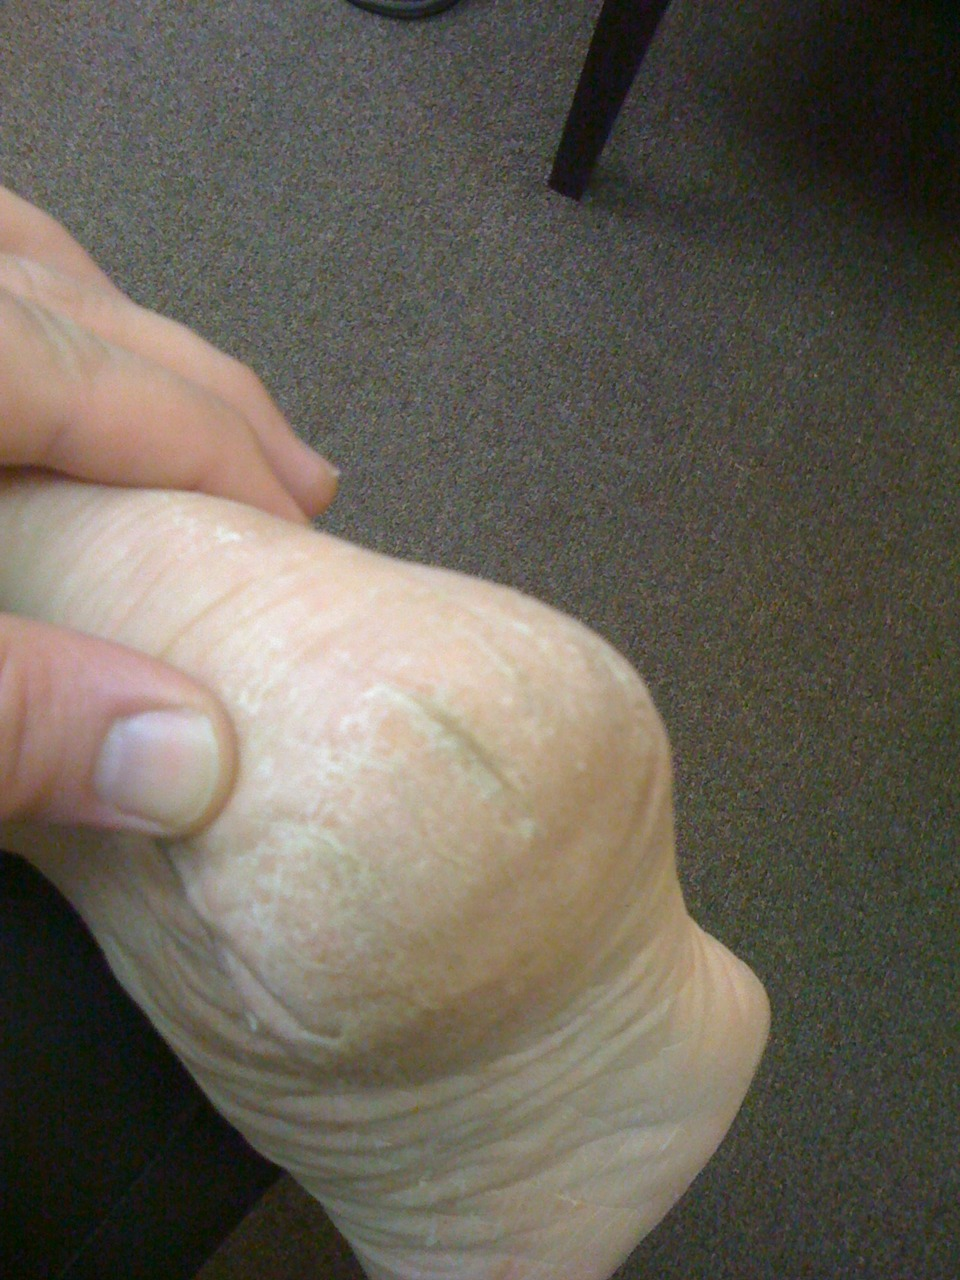 "Is that dry skin on your feet ? Lotions not working ? It is a yeast infection !   How many times will you smash your forehead into a wall before you realize that the bleeding suggests it might not be a good idea to continue ?   Similarly, how many times are you going to put lotion on your feet, or pumice off the dry skin and callouses before you ask ""maybe this isn't dry skin after all !"" ?   Do your feet have something similar as to what is seen in the photo above ? Do your heels look like this ? Do they have the deep fissured cracks ? Do you have similar powdery white appearing stuff on your feet ? Are lotions not taking care of all this ""apparently dry"" skin ?   Candida albicans is a yeast that lives in harmony in and on our body until something throws off the delicate balance, causing the fungus to proliferate wildly. When Candida is allowed to build up in the body, over time a wide variety of severe symptoms can occur. Without proper treatment, the yeast overgrowth can be extremely dangerous.   Candida buildup in any one place in or on the body indicates that a balancing act is off when it comes to normal body system regulation. Candida overgrowth can cause cognitive problems, genitourinary, gastrointestinal, allergic and even (as we see here) dermatological problems. The skin is the body's largest organ and it is also susceptible to problems.   Sometimes referred to as Athletes foot, in this case a fungus, it spreads easily through contact. Exposure to the fungus does not guarantee its growth and conditions must be right for the fungus to spread. Athletes foot is a fungal infection of the skin of the feet, which can also involve reactions by the feet and skin to toxins produced by candida/fungus overgrowth.         Red and/or pale skin.   Mild to intense itchiness, mostly in between the toes.   Burning and inflammation.   Cracked or blistered skin.   Skin patches and scaling of the skin.   Skin fissures (small cracks).   Toenails may become affected as athlete's foot progresses causing thick yellowish nails that are malformed, thickened and crumbly, called onychomycosis.   Fingernails can also become affected just like toenails.    Fungus on the feet can also develop into or enable other opportunistic issues such as calluses, corns, warts, and horny growths, or keratotic tissue (hardened horny growths or build-up). Active growth of the fungus is also supported by nutrients contained in such horny growths.     Now do not dismiss this apparently benign problem. We have had patients experience bleeding from these deep fissures and cracking and   we even had one client have one of these bleeding fissures get infected with Staph Aureus and almost lose their entire leg from the ""flesh eating bacteria"".   So we do not take this apparently benign infection lightly and we suggest you not either.   Find a doctor that will properly diagnose the problem and then look deeper for signs and symptoms that indicate where in the body the imbalance is located. We have found it is usually a GI (gastrointestinal) tract problem, one of dysbiosis (normal flora imbalance) in the bowels.      Yeast and fungal infection, they are definitely not just for athletes alone.  If you have it, it is in all of your shoes, on your shower floor, and anywhere it can harbor growth. But do not freak out. Just take care of the problem and move on. It is a mere several weeks to months to remedy. Just get the right solution for the job.  When it comes to yeast we suggest 2% miconazole cream (yes, vaginal yeast cream) be trialed, but it isn't a fix if that is not the problem.  See someone who knows. Sadly the yeast problem is missed by most in the field, we have no idea why but it is.      Shawn and Ivo…….not just your regular foot geeks.      Read more:  Signs & Symptoms of Candida Buildup in the Human Body 